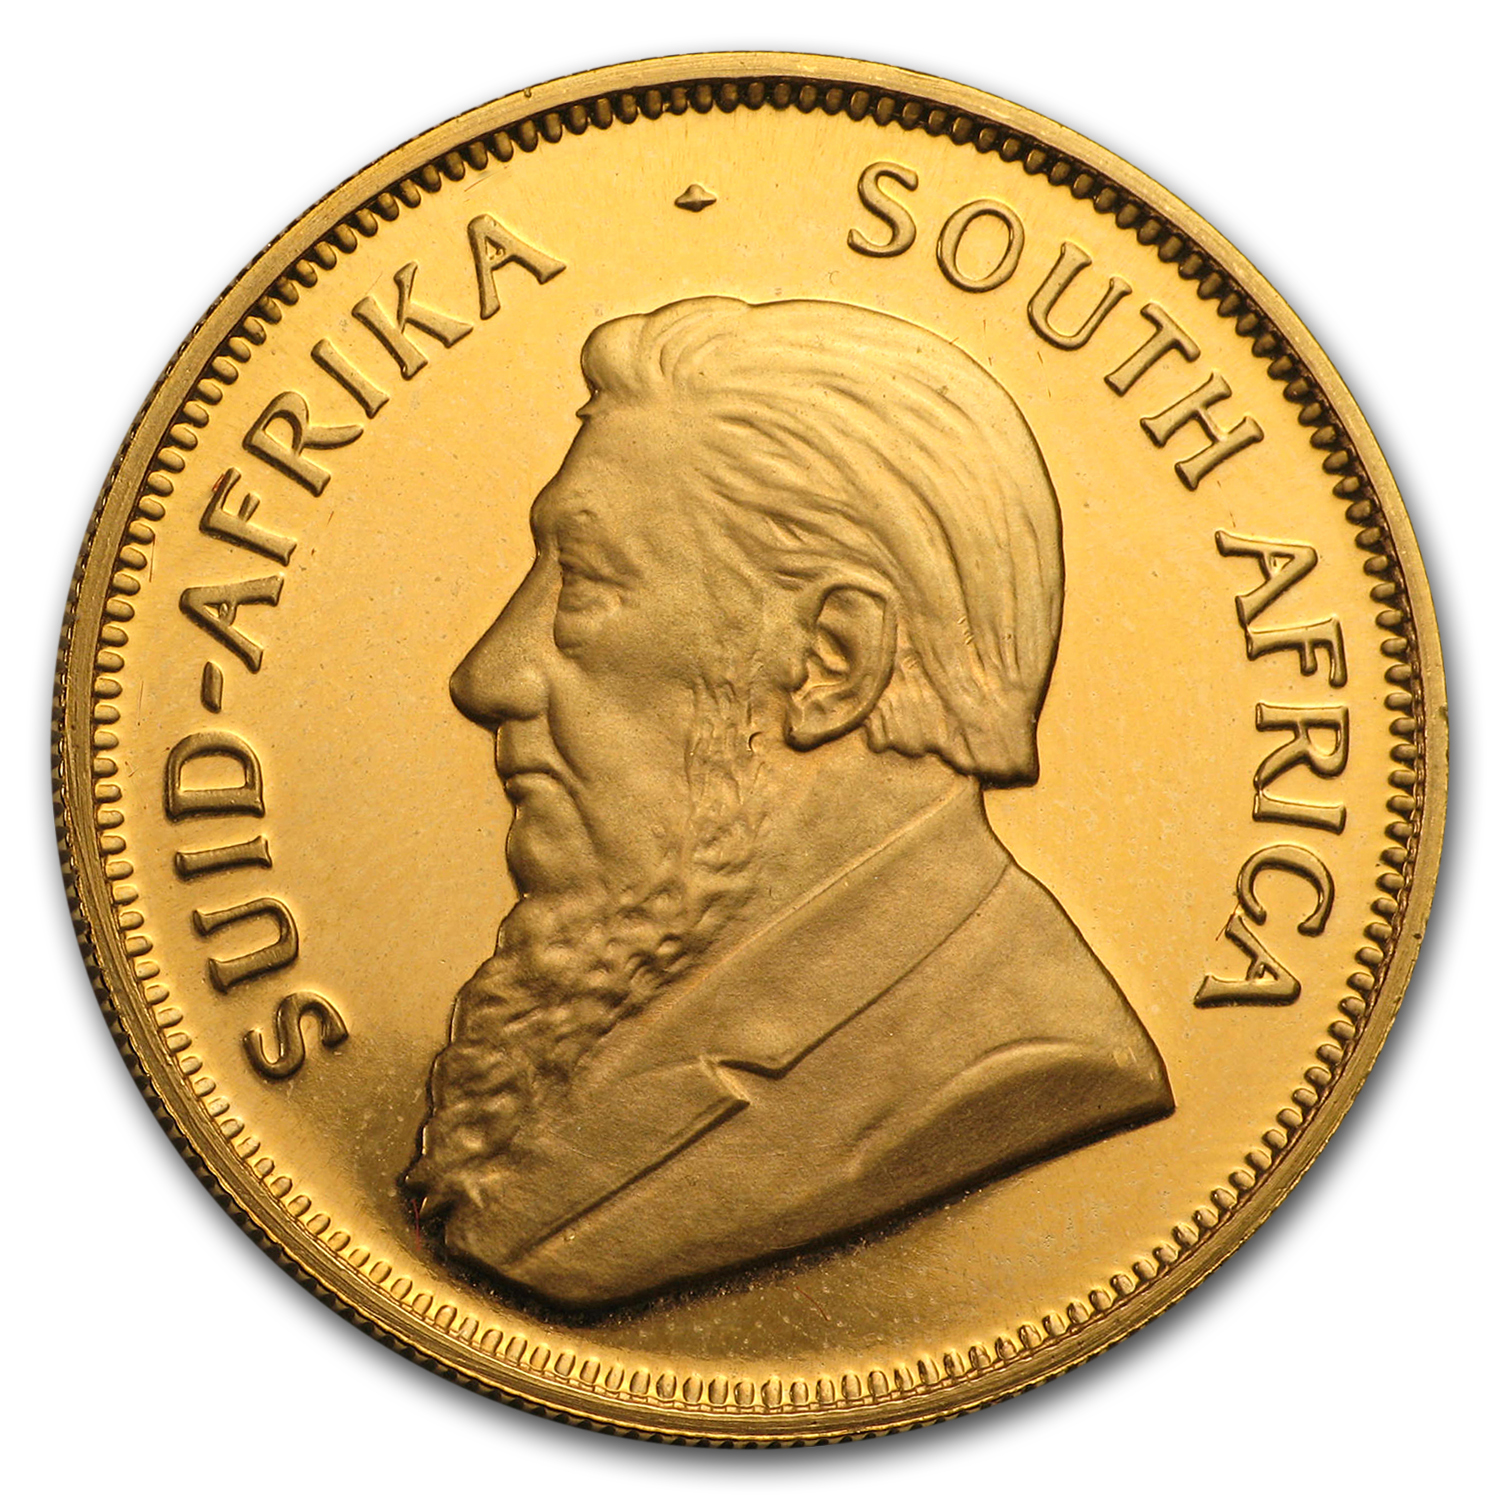 1981 South Africa 1/2 oz Proof Gold Krugerrand